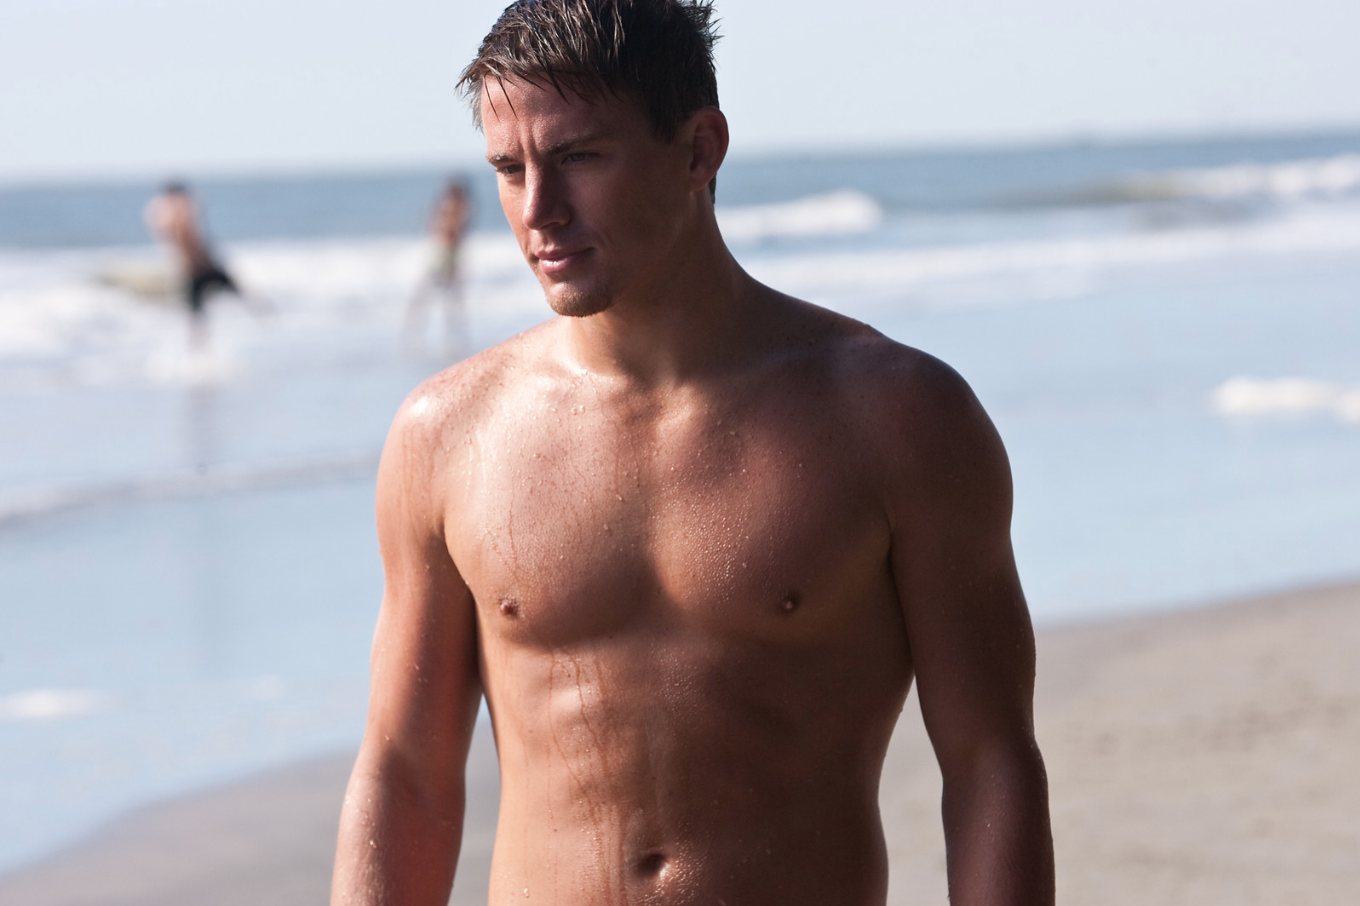 Channing Tatum at the beach